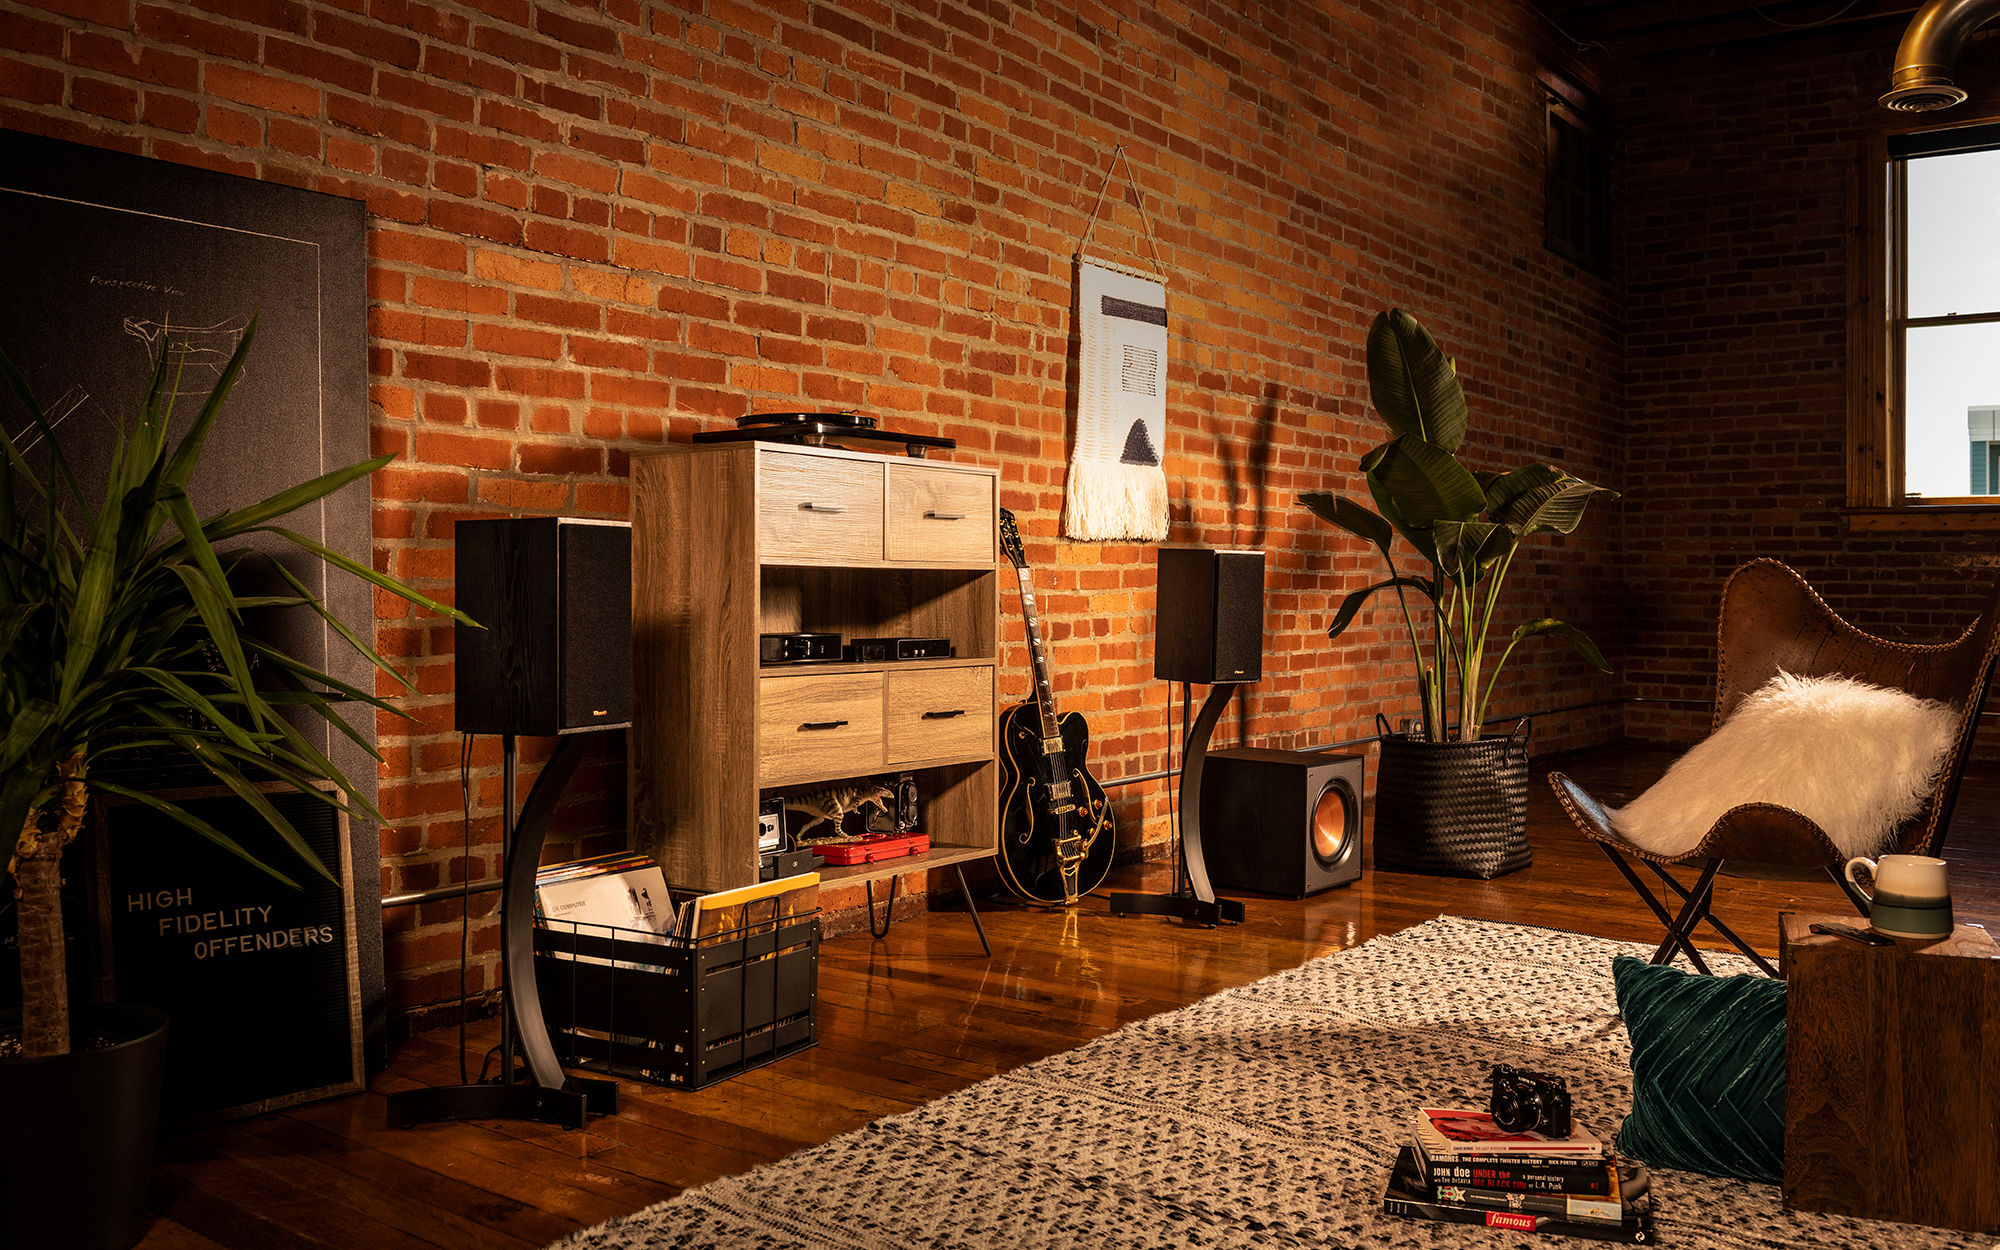 Klipsch speakers with a guitar and wooden shelf